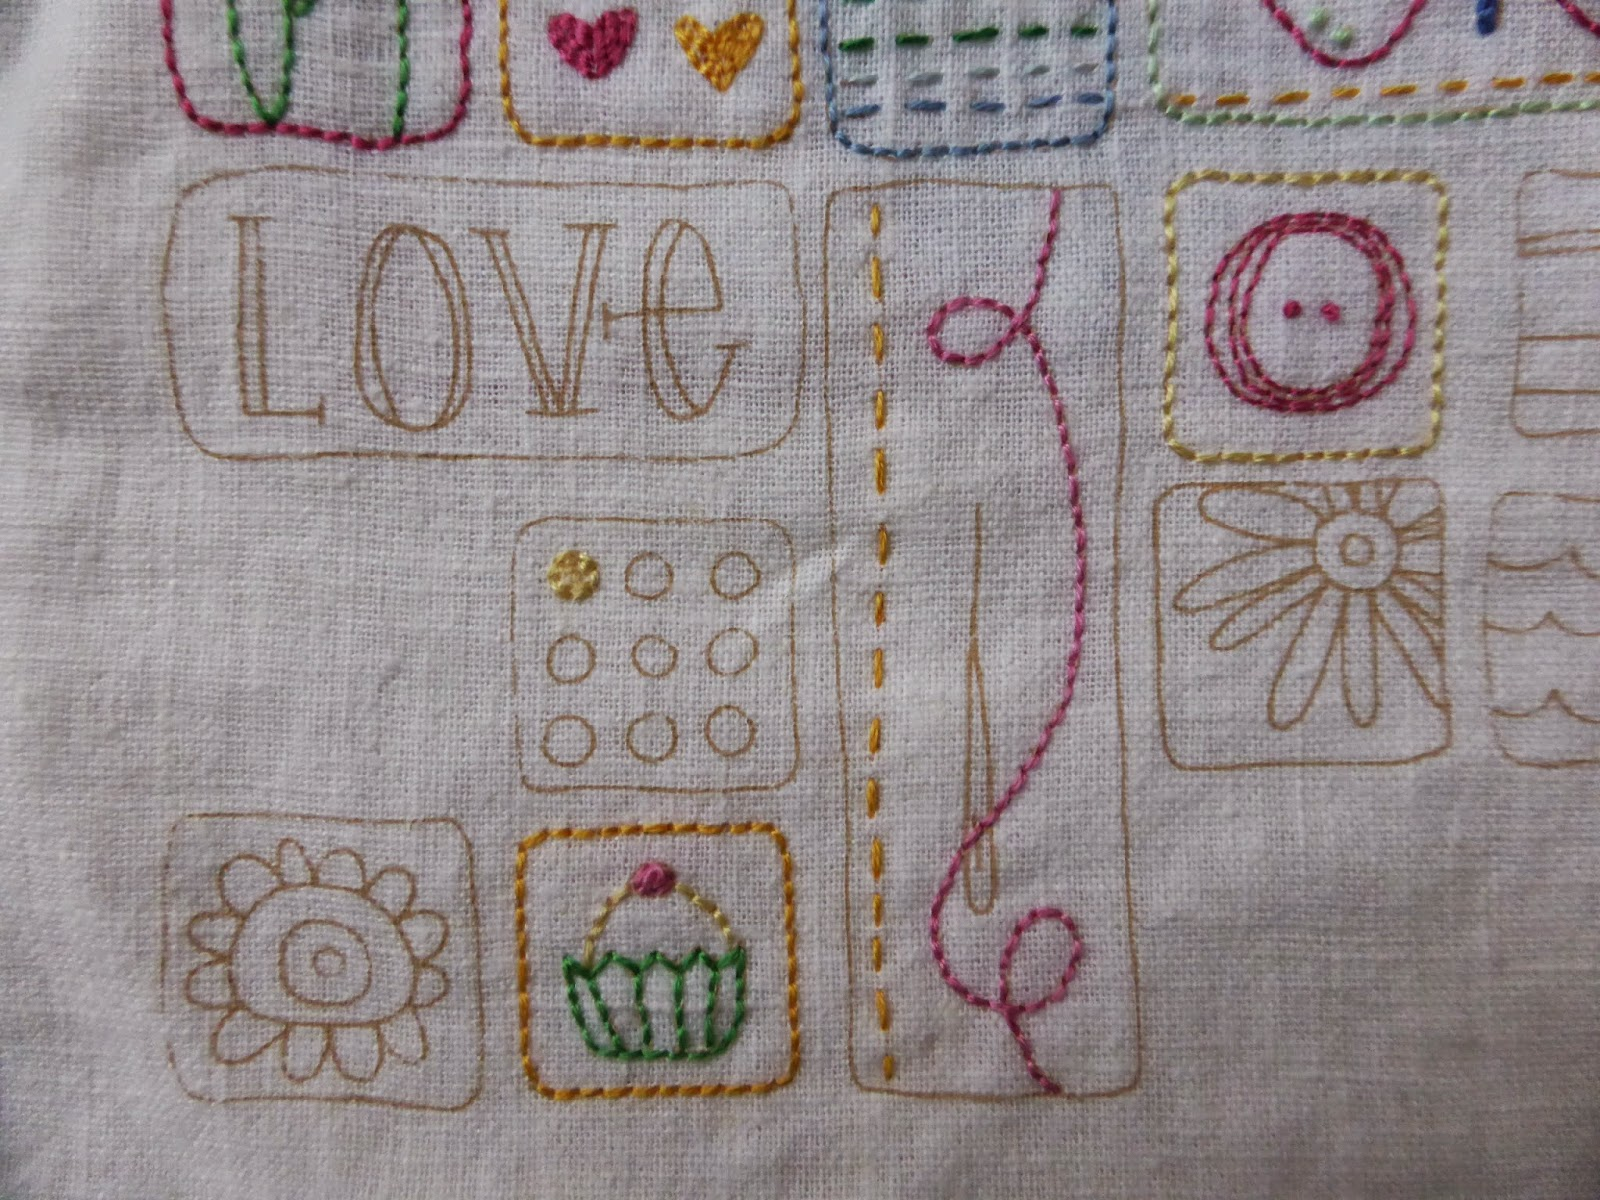 Sew Laugh Love - pattern by Leanne Beasley